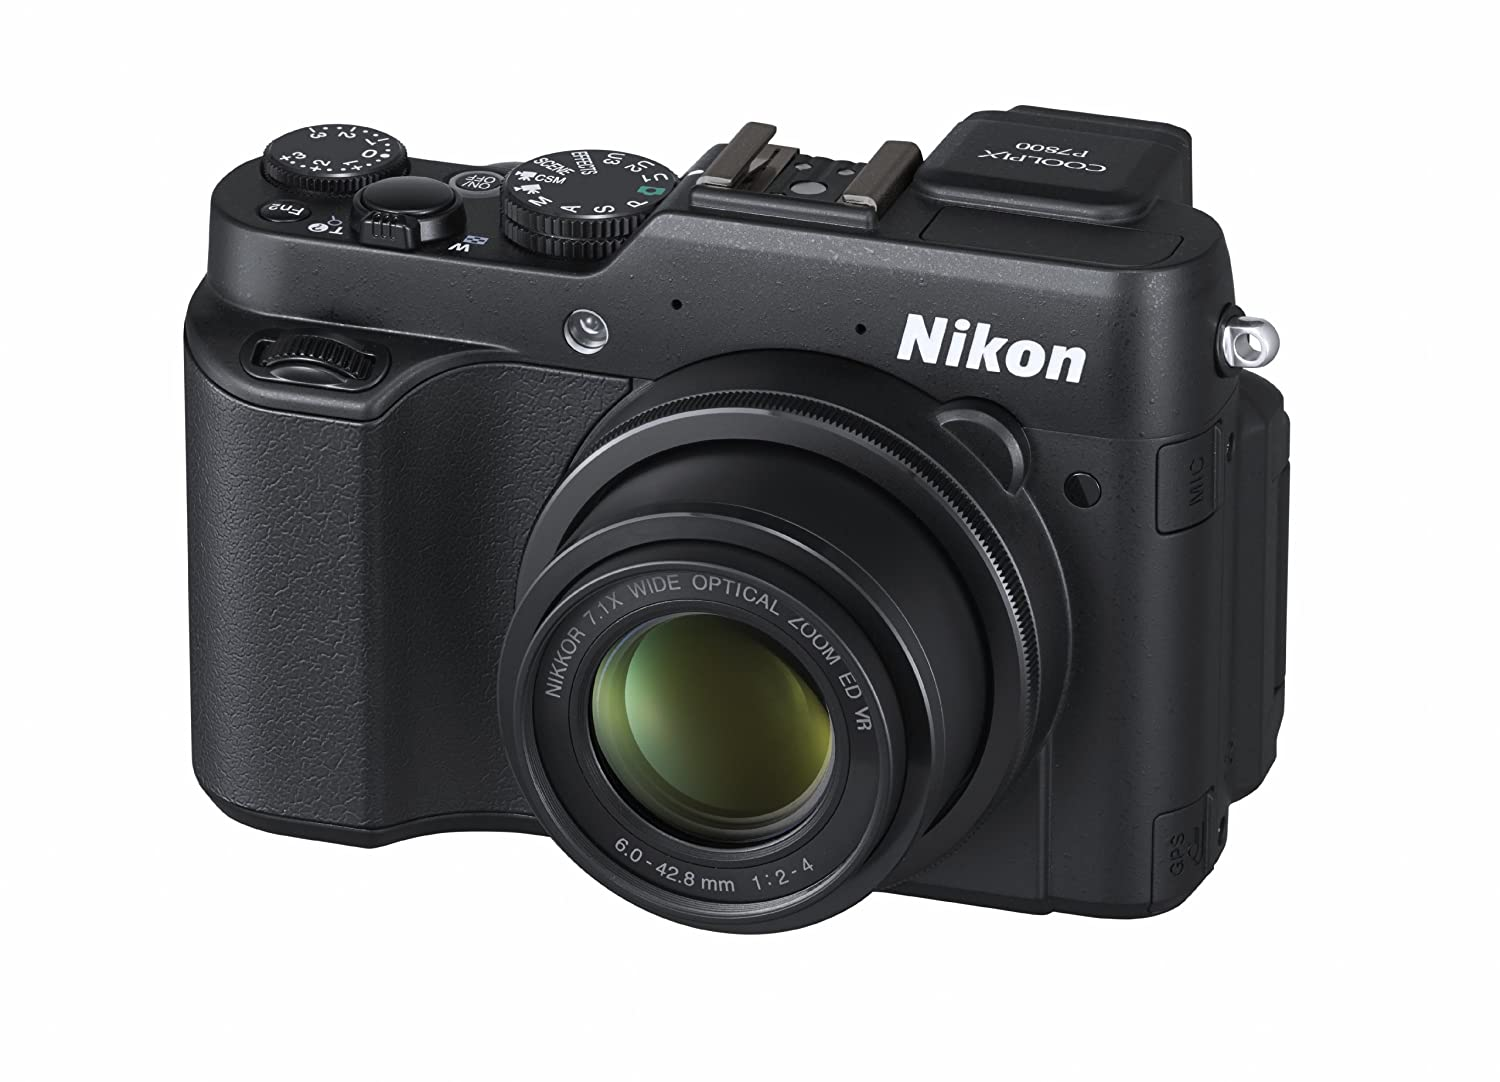 Find great deals for nikon coolpix p7800 12. 2mp digital camera black. Buy it now. For those who simply want the best, the coolpix p7800 delivers.